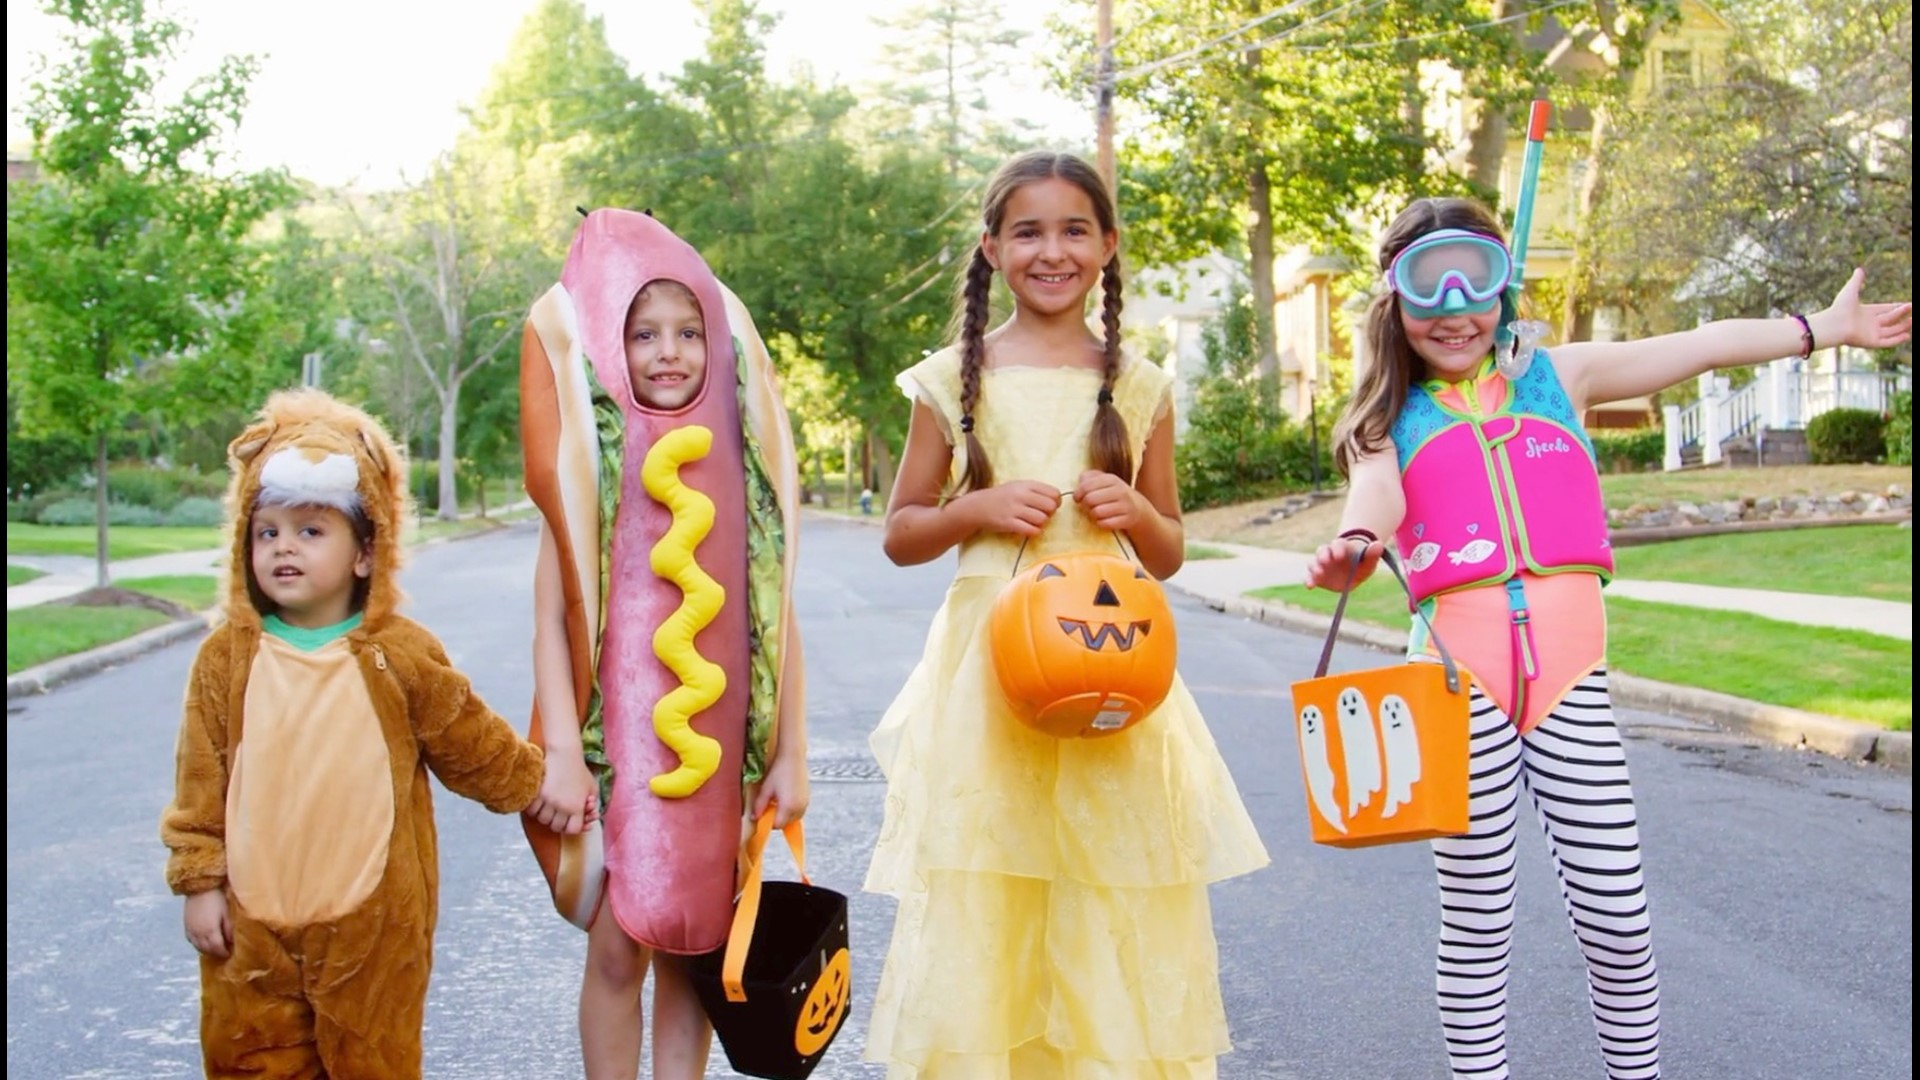 Halloween 2020 Fayetteville Fort Smith/Fayetteville News | 5newsonline KFSM 5NEWS | Get the